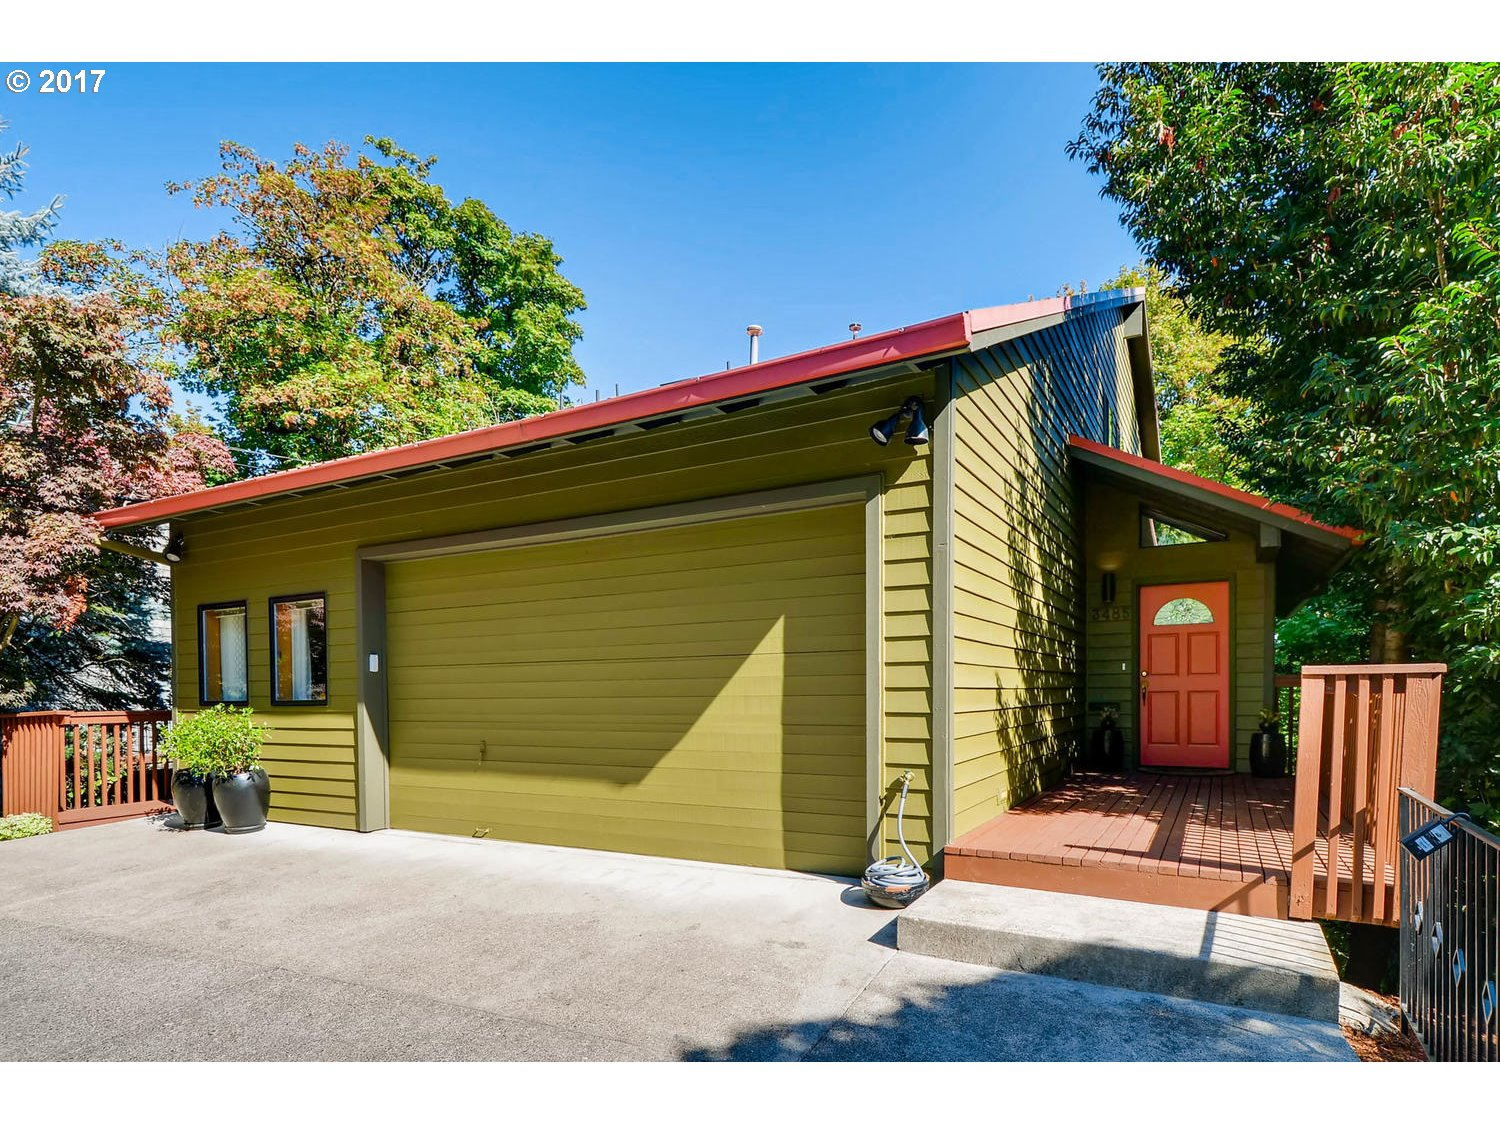 3132 sq. ft 3 bedrooms 2 bathrooms  House For Sale, Portland, OR